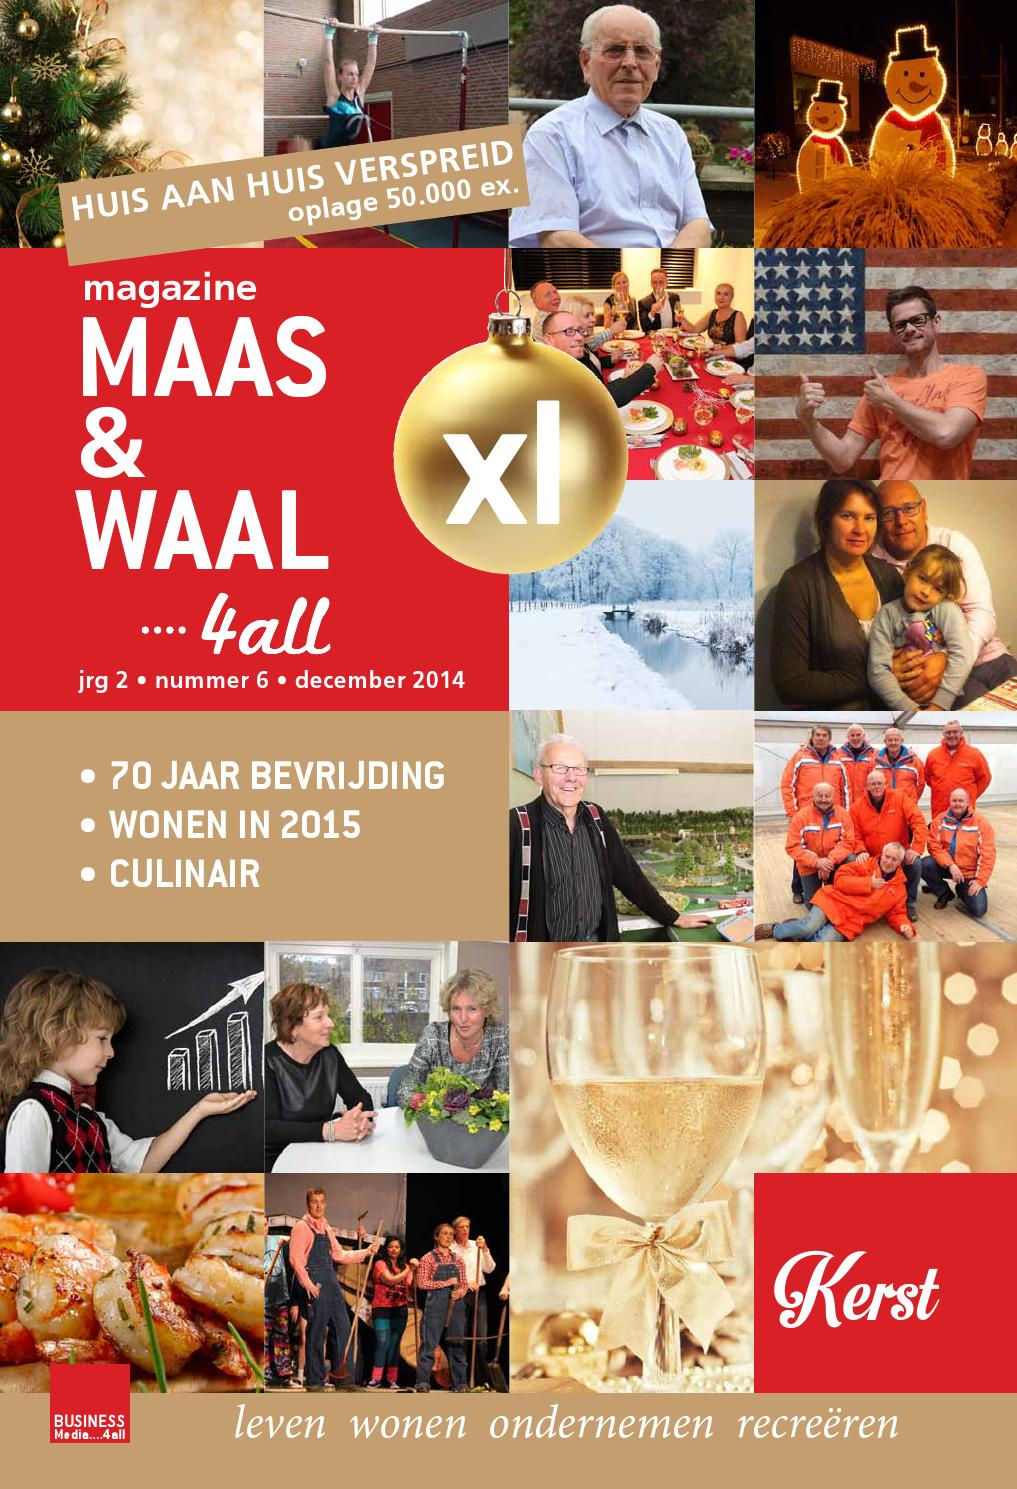 Tiel xl  rivierenland4all maart 2015 by business media....4all   issuu